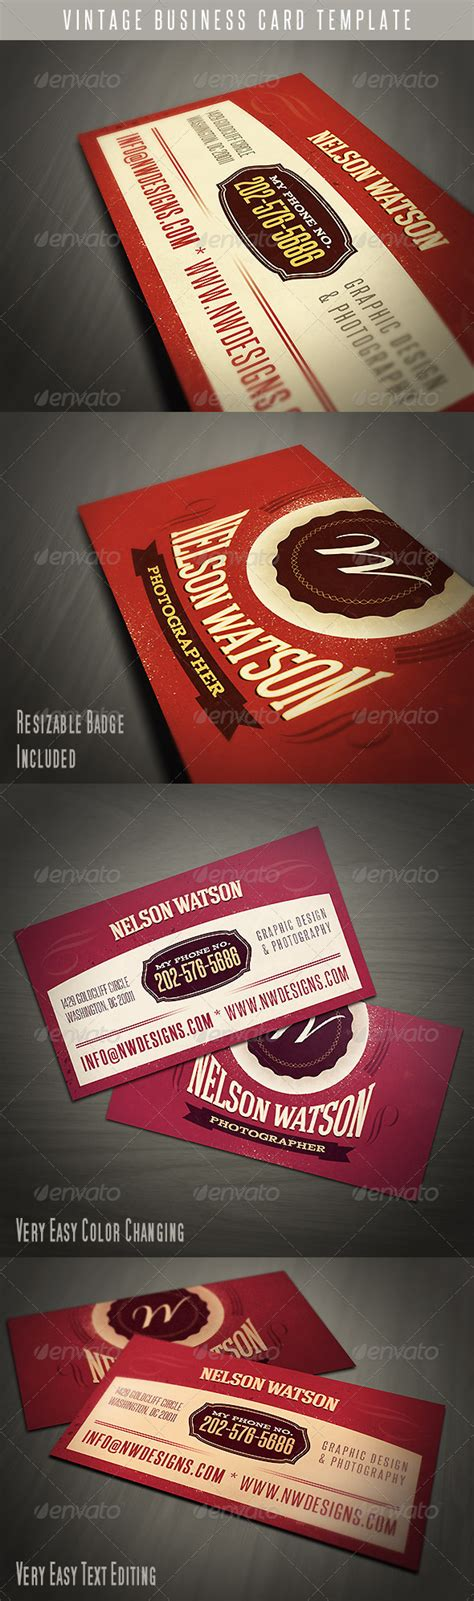 vintage business card template vintage business card template by vilord graphicriver